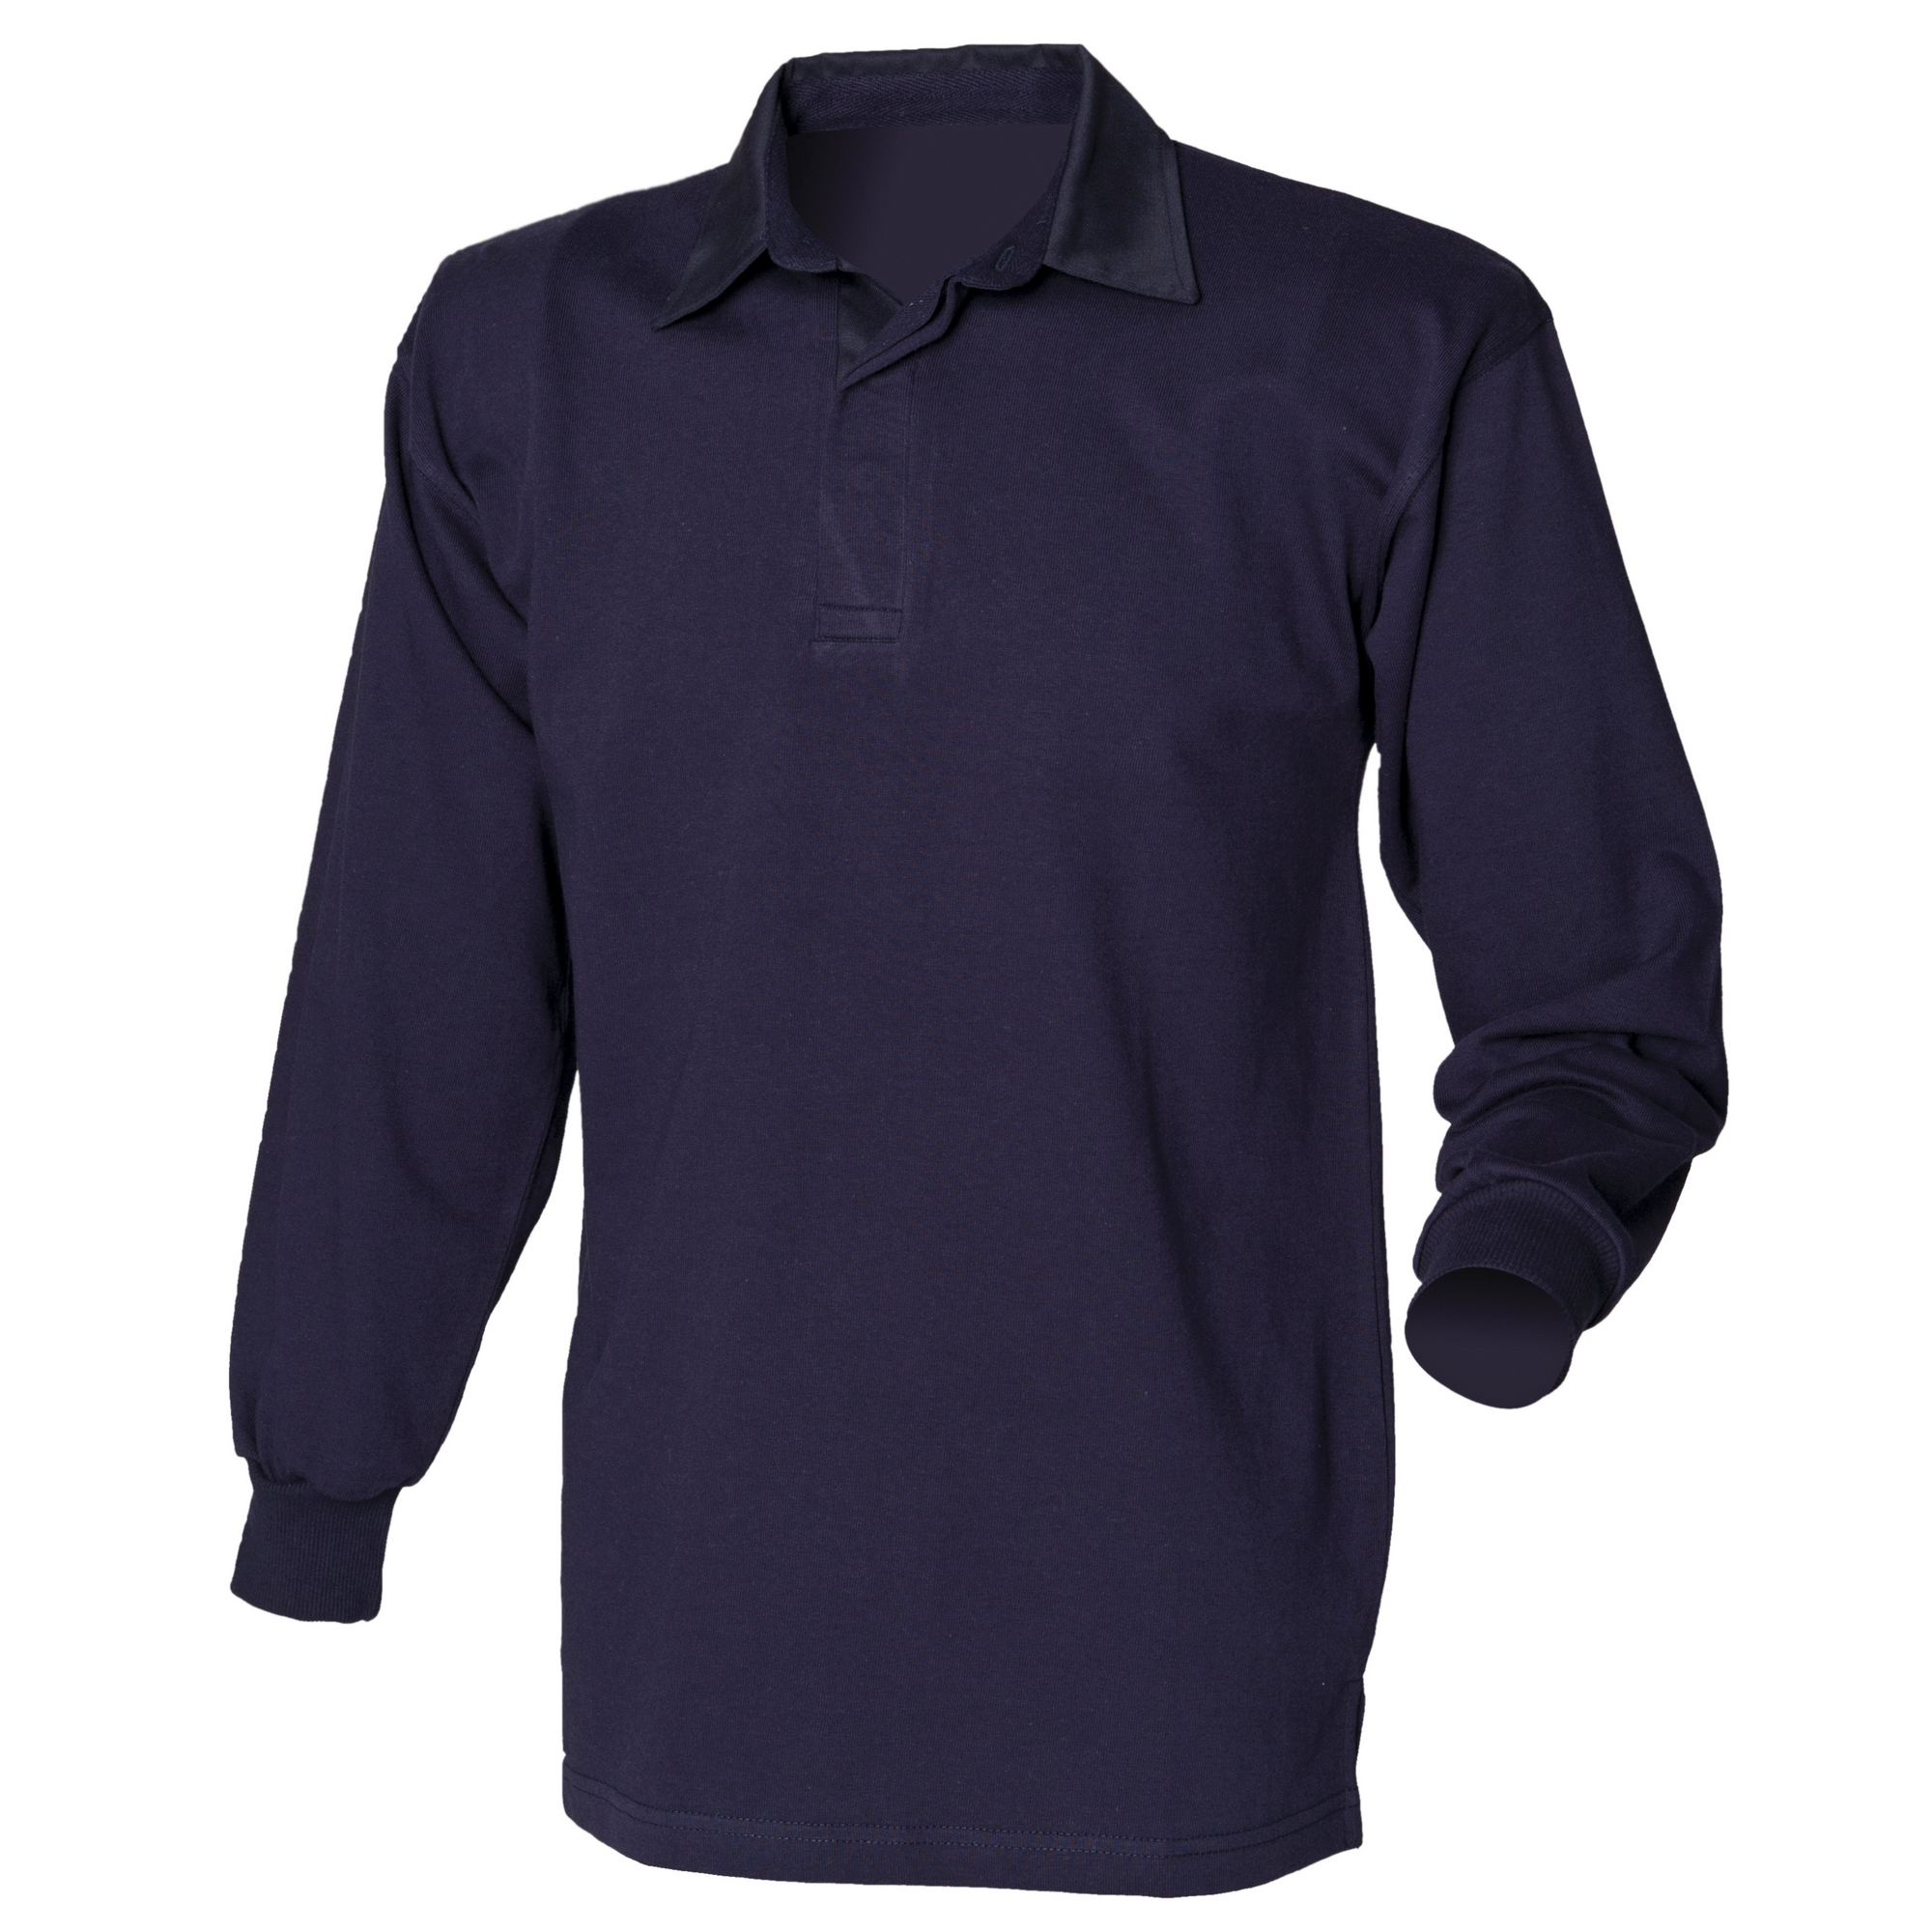 Front Row Long Sleeve Classic Rugby Polo Shirt T-shirt Szs S-4XL RW478